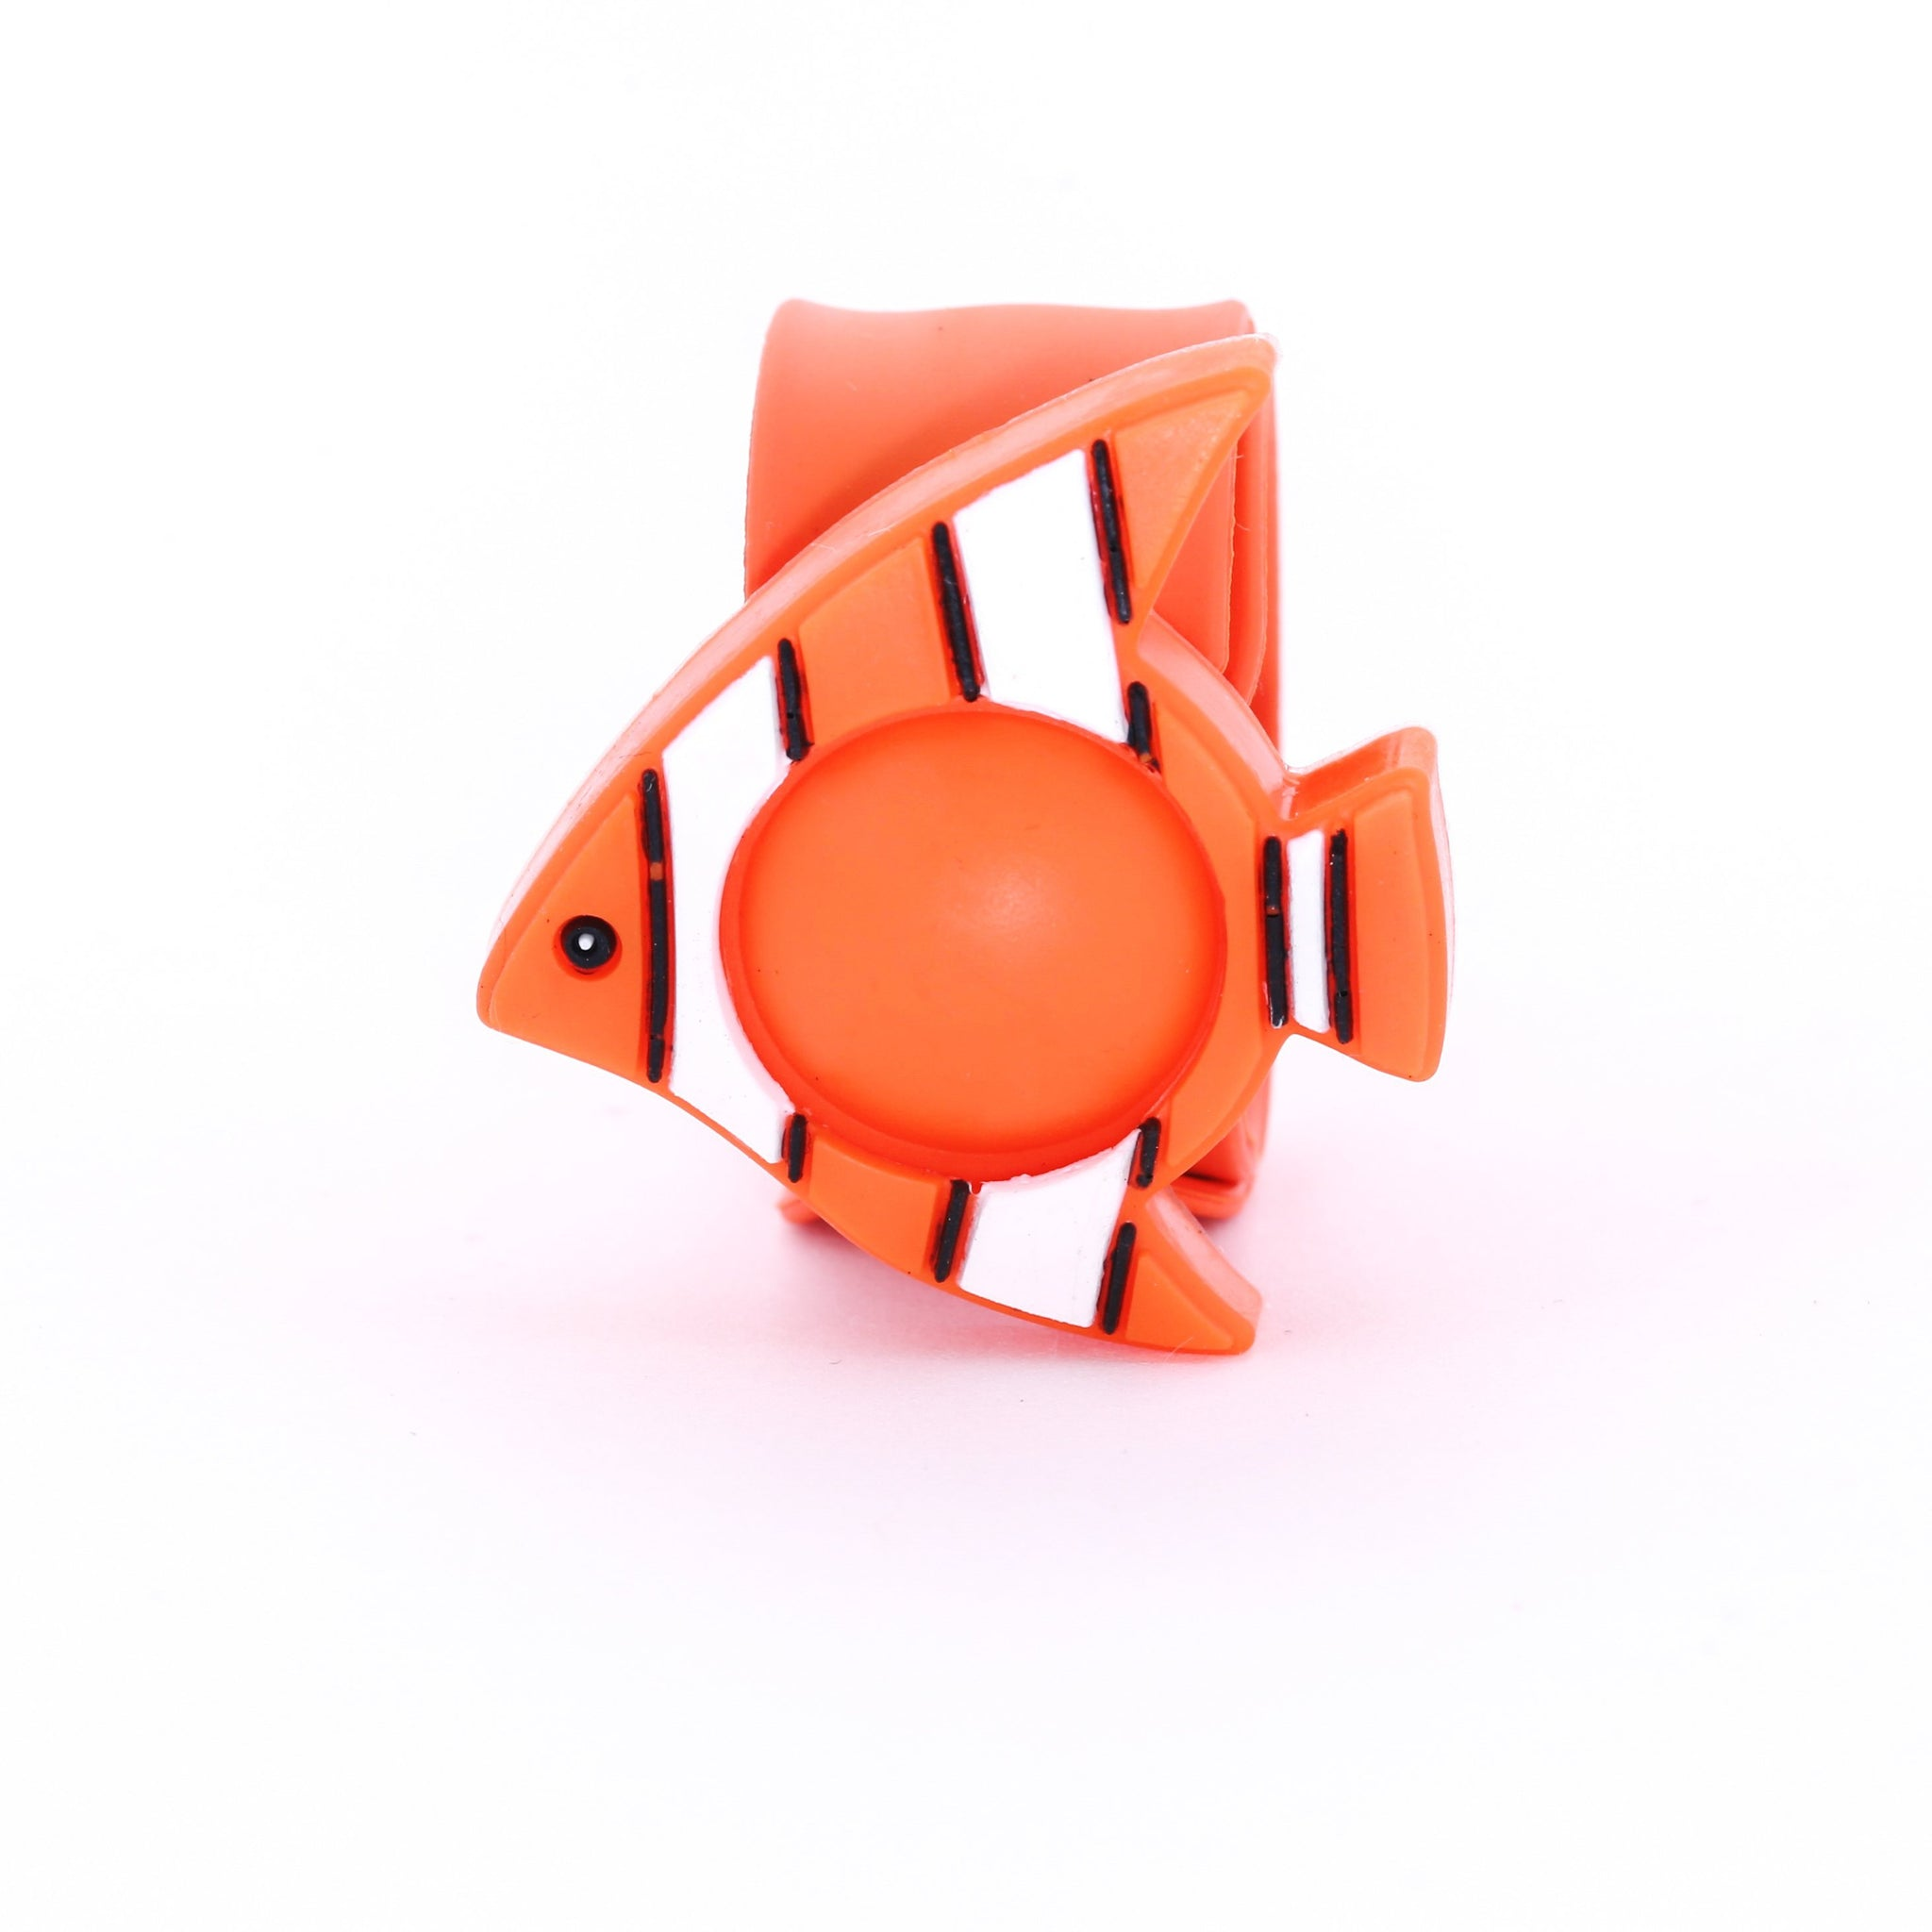 Slap-it Cartoon Mosquito Bands - Orange Clownfish